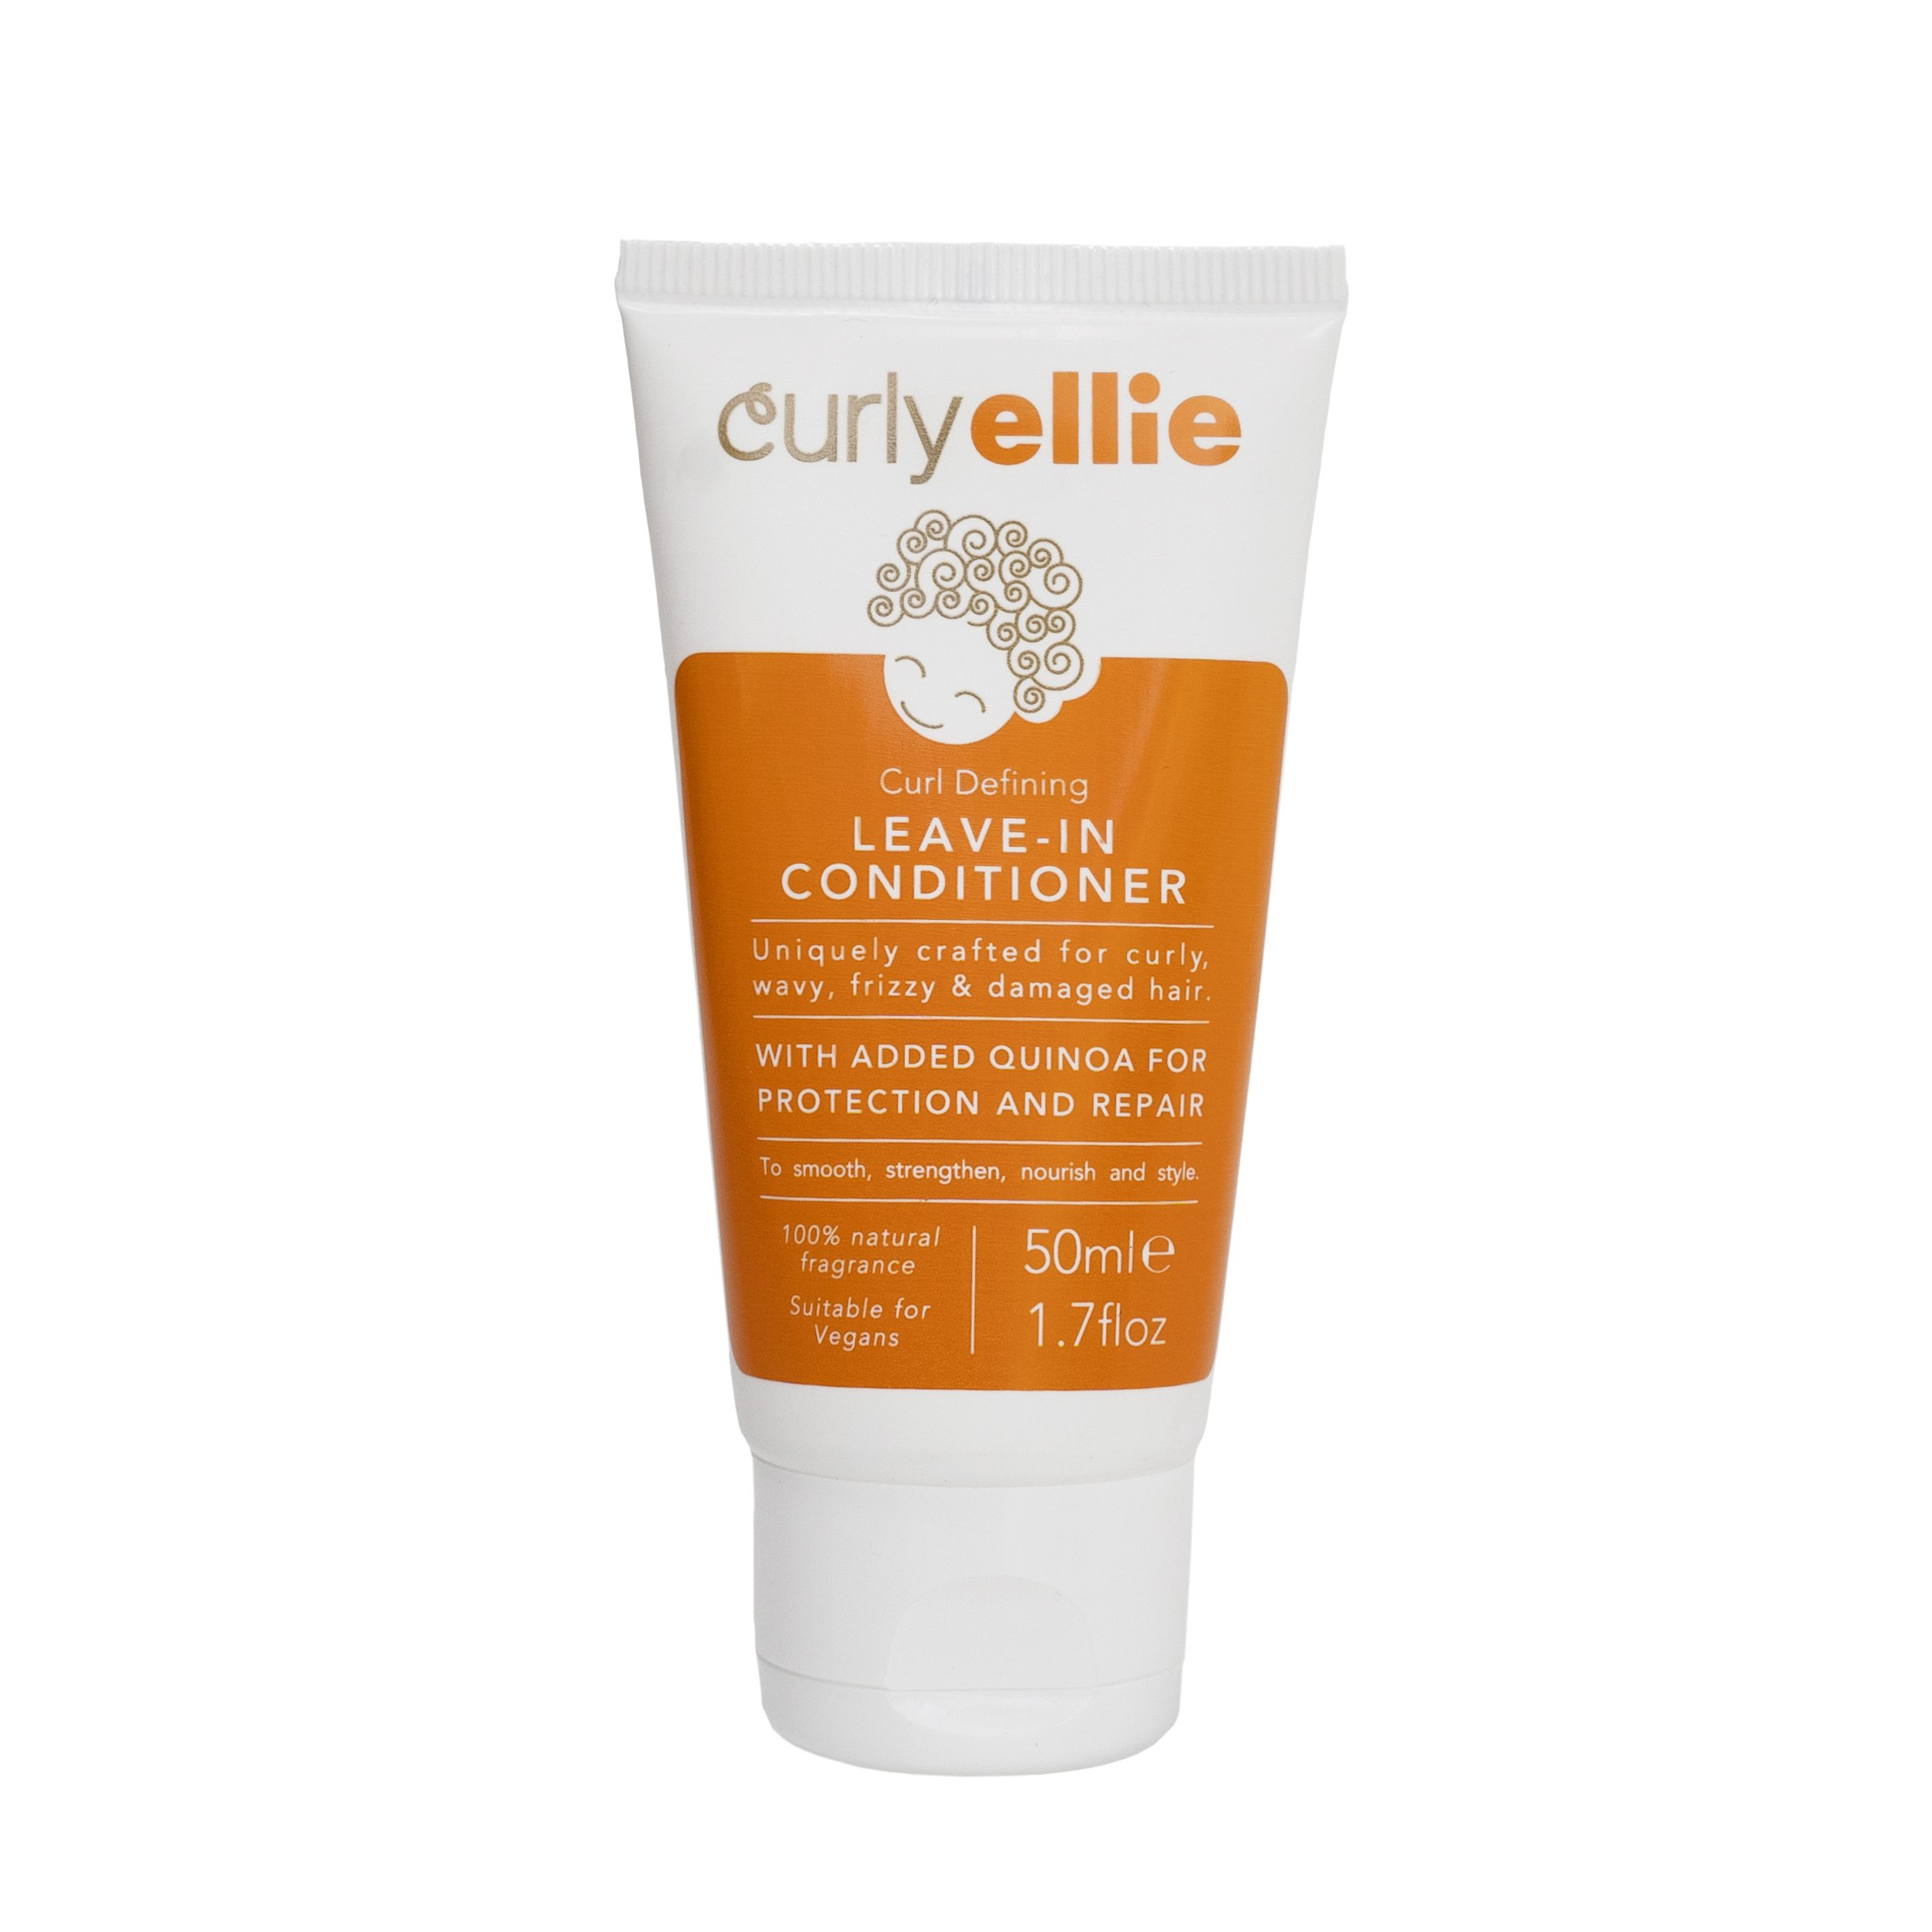 CurlyEllie Curl Defining Leave-in Conditioner - 50ml